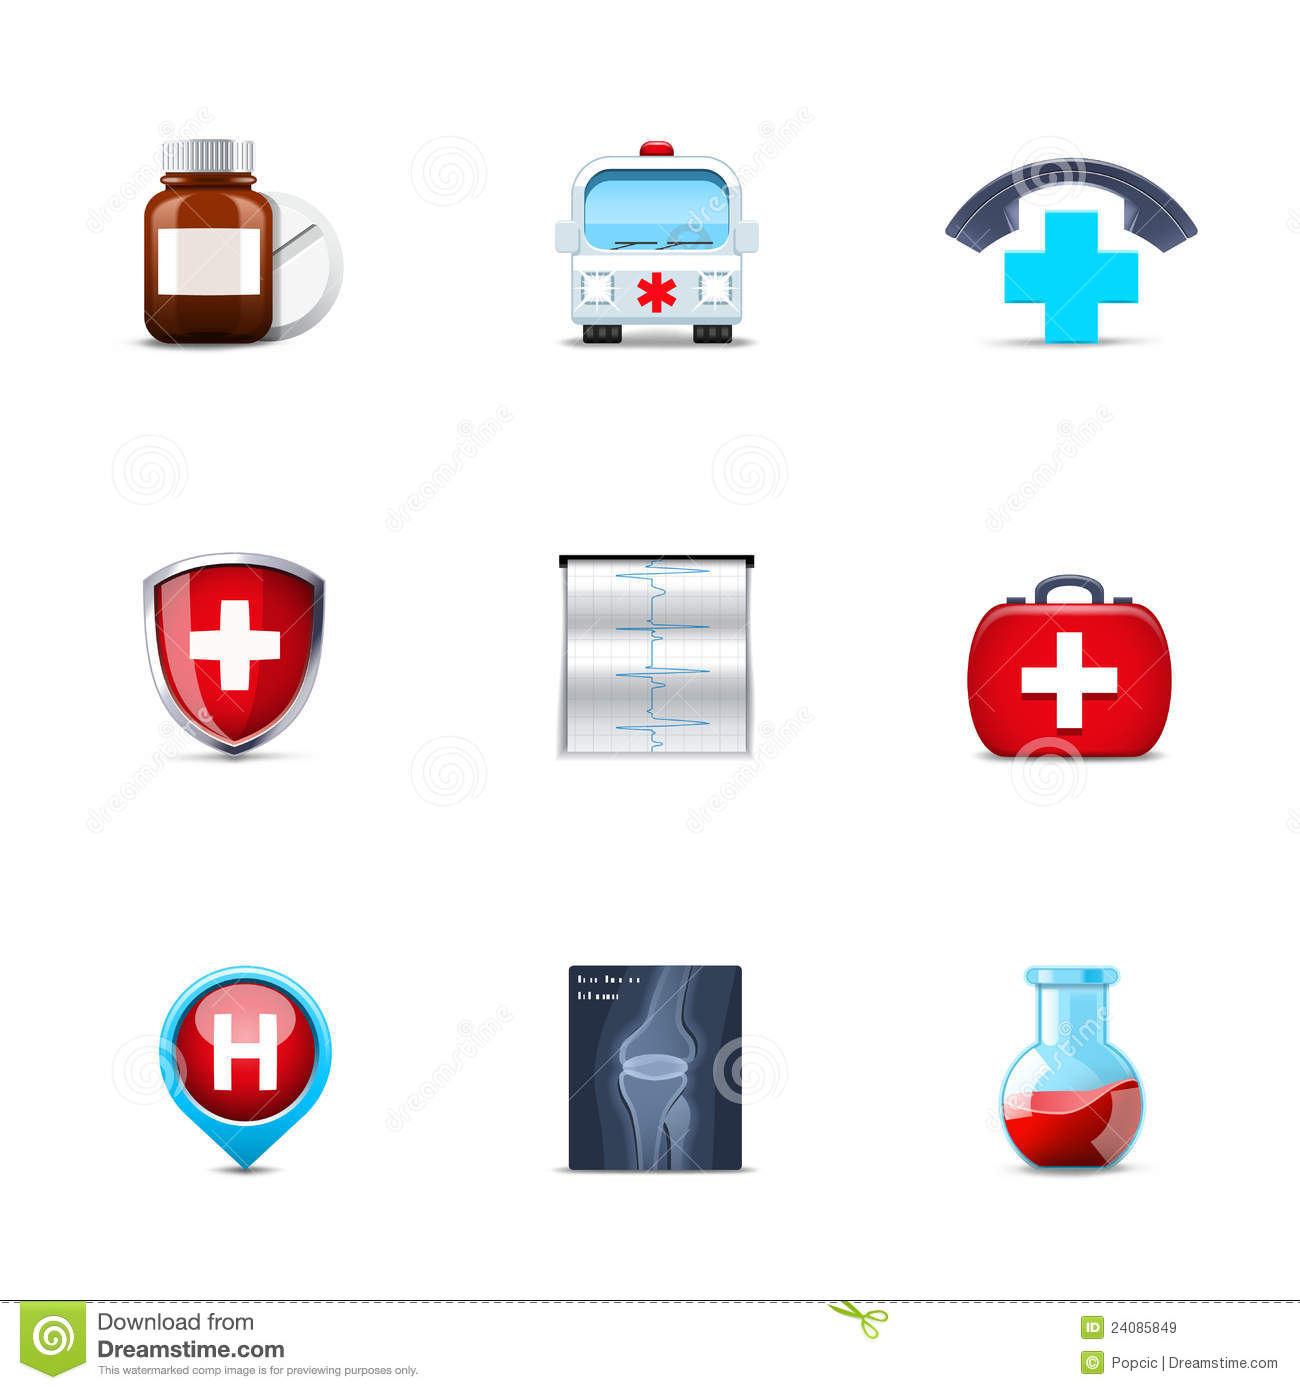 House Doctor Ornament Dreams Medical Icons Royalty Free Stock Images - Image: 24085849